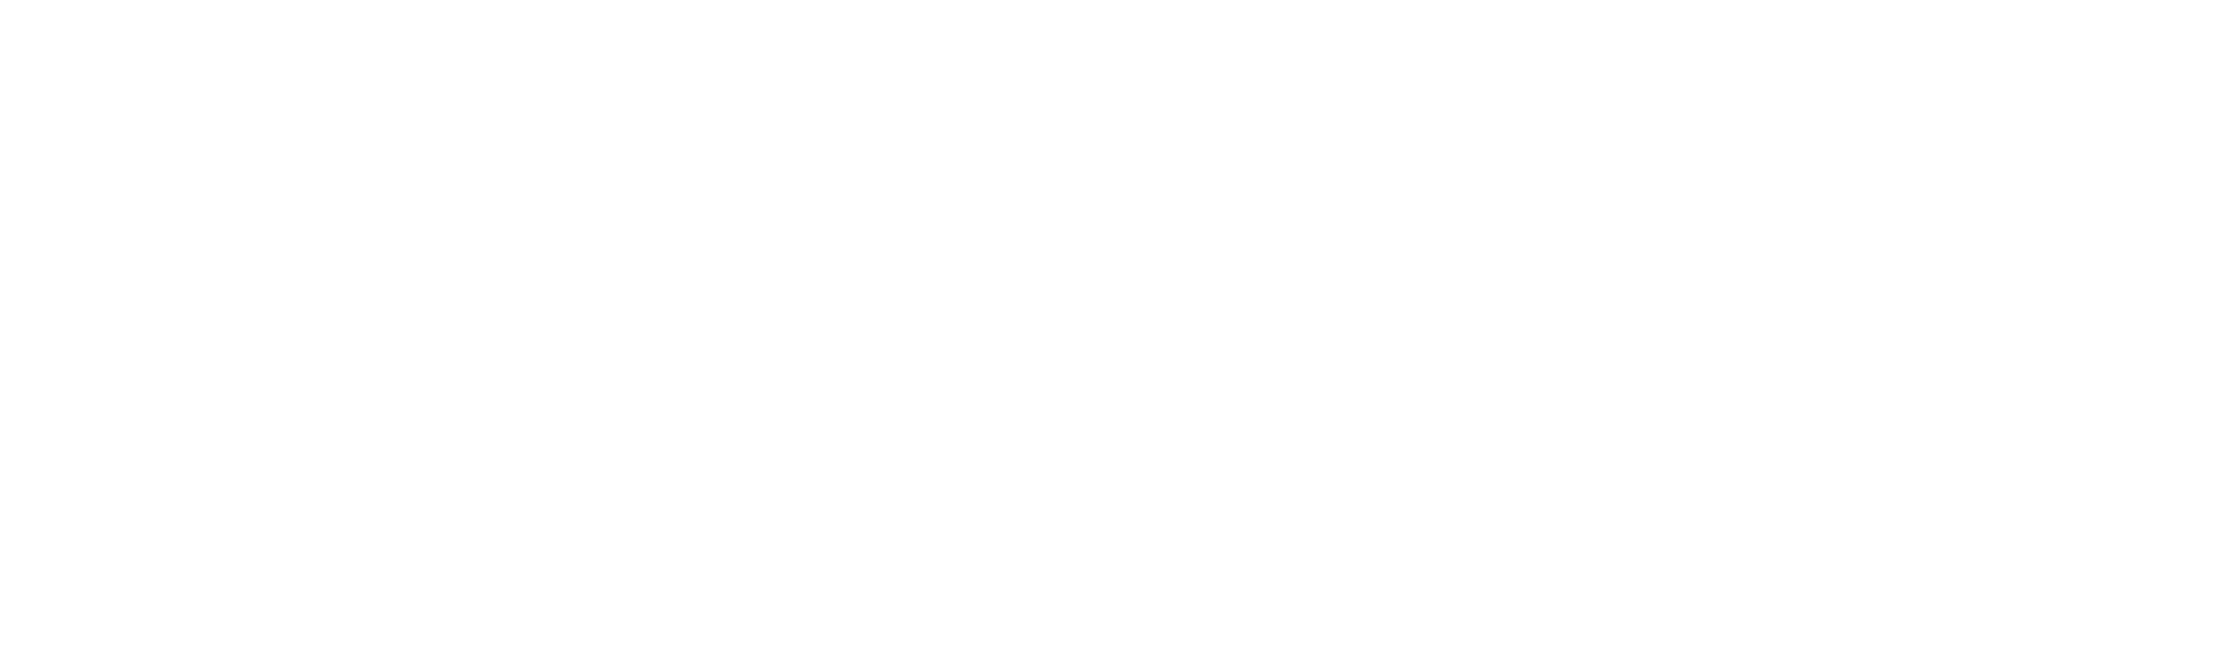 White Buffalo Gallery